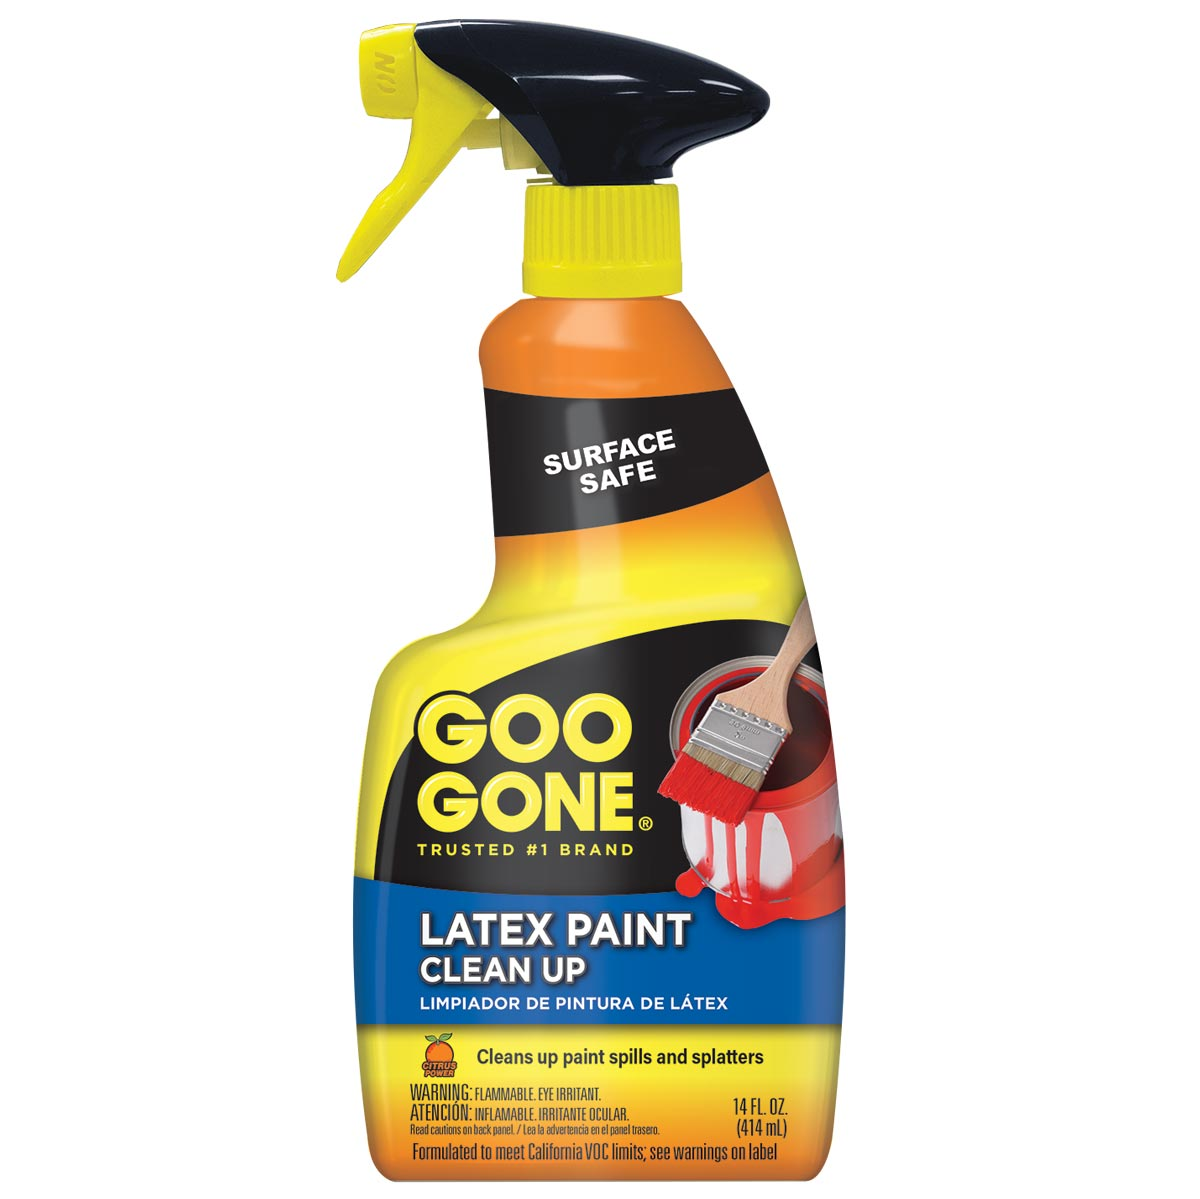 Goo Gone Latex Paint Clean Up